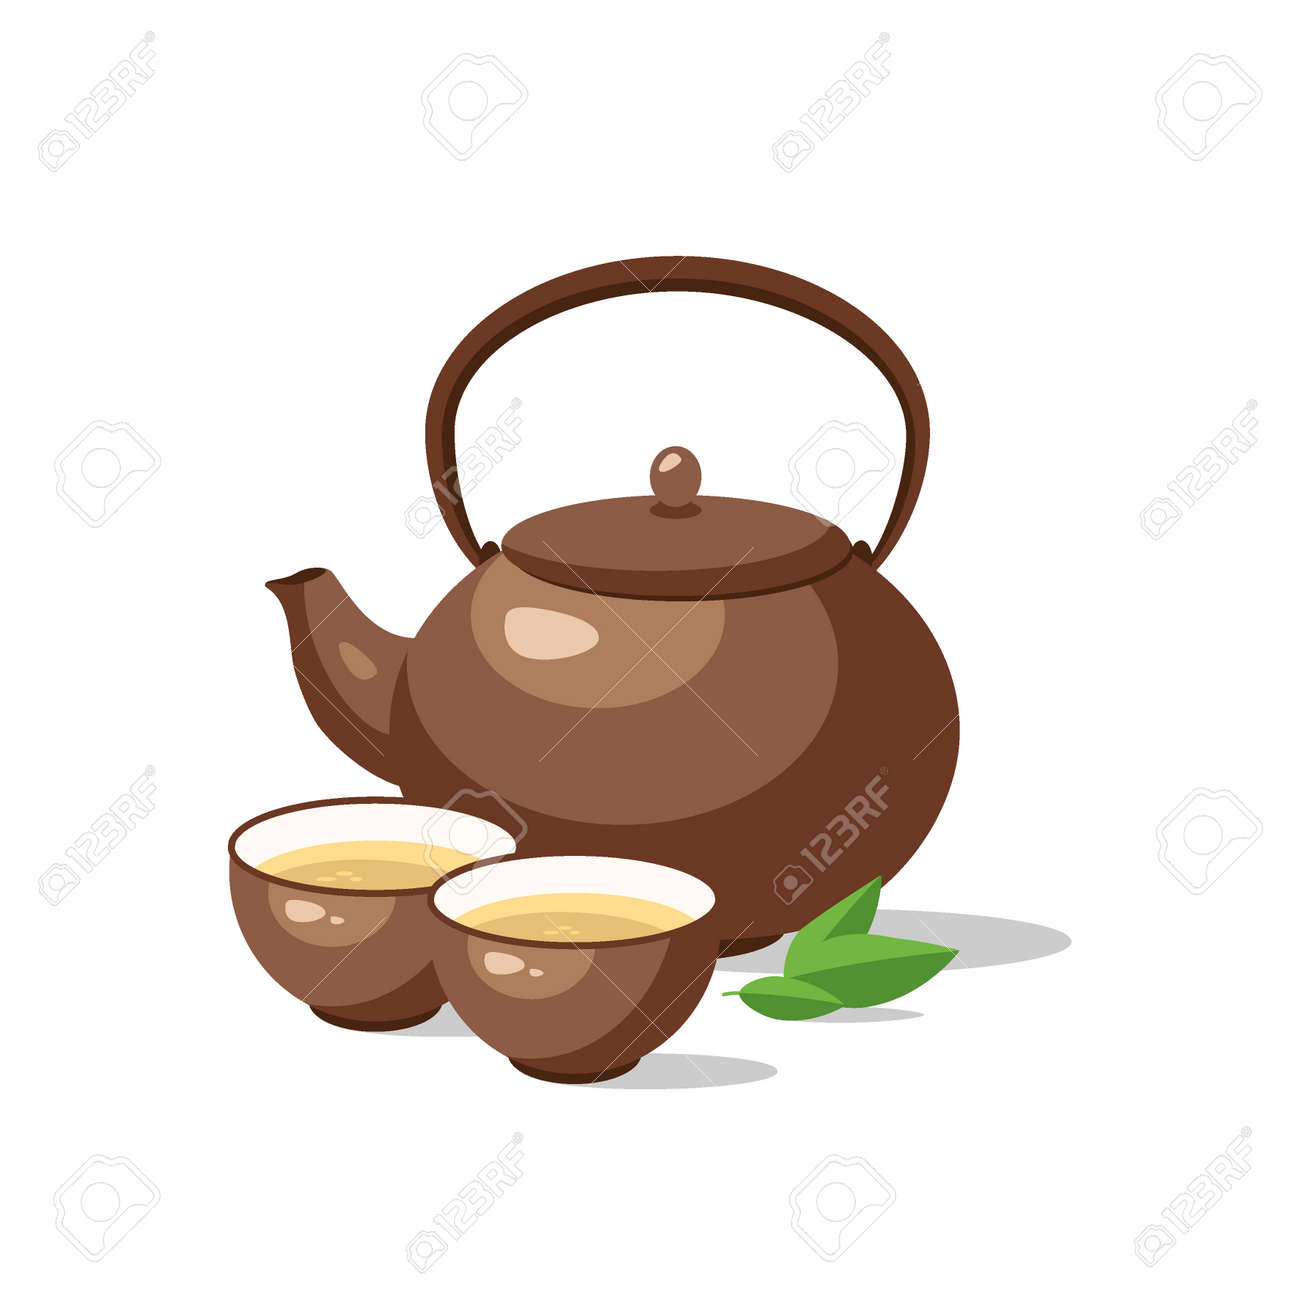 Japanese, chinese tea ceremony set. Ceramic teapot and cup bowls of green tea isolated. Vector illustration. - 126854363